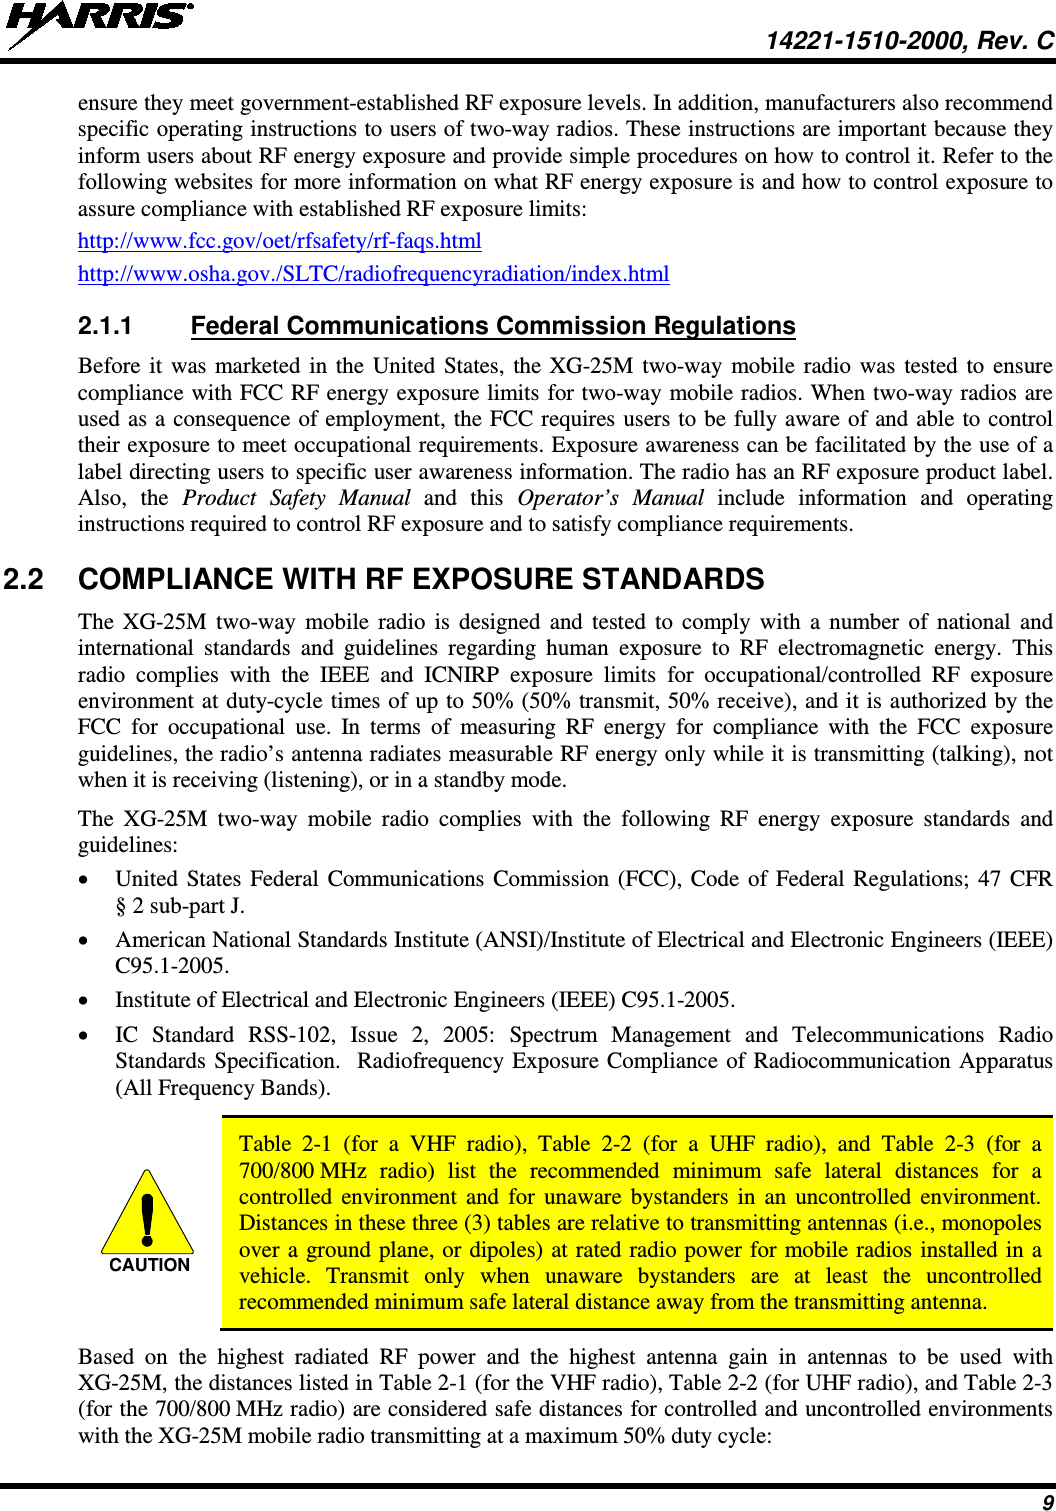 14221-1510-2000, Rev. C 9 ensure they meet government-established RF exposure levels. In addition, manufacturers also recommend specific operating instructions to users of two-way radios. These instructions are important because they inform users about RF energy exposure and provide simple procedures on how to control it. Refer to the following websites for more information on what RF energy exposure is and how to control exposure to assure compliance with established RF exposure limits: http://www.fcc.gov/oet/rfsafety/rf-faqs.html http://www.osha.gov./SLTC/radiofrequencyradiation/index.html 2.1.1 Federal Communications Commission Regulations Before it was marketed in the United States, the XG-25M two-way mobile radio was tested to ensure compliance with FCC RF energy exposure limits for two-way mobile radios. When two-way radios are used as a consequence of employment, the FCC requires users to be fully aware of and able to control their exposure to meet occupational requirements. Exposure awareness can be facilitated by the use of a label directing users to specific user awareness information. The radio has an RF exposure product label. Also,  the  Product Safety Manual and this  Operator's Manual include information and  operating instructions required to control RF exposure and to satisfy compliance requirements. 2.2 COMPLIANCE WITH RF EXPOSURE STANDARDS The XG-25M two-way  mobile radio is designed and tested to comply with a number of national and international standards and guidelines regarding human exposure to RF electromagnetic energy. This radio complies with the IEEE and ICNIRP exposure limits for occupational/controlled RF exposure environment at duty-cycle times of up to 50% (50% transmit, 50% receive), and it is authorized by the FCC for occupational use. In terms of measuring RF energy for compliance with the FCC exposure guidelines, the radio's antenna radiates measurable RF energy only while it is transmitting (talking), not when it is receiving (listening), or in a standby mode. The  XG-25M  two-way  mobile  radio complies with the following RF energy exposure standards and guidelines: • United States Federal Communications Commission (FCC), Code of Federal Regulations; 47 CFR § 2 sub-part J. • American National Standards Institute (ANSI)/Institute of Electrical and Electronic Engineers (IEEE) C95.1-2005. • Institute of Electrical and Electronic Engineers (IEEE) C95.1-2005. • IC  Standard RSS-102, Issue 2, 2005: Spectrum Management and Telecommunications Radio Standards Specification.  Radiofrequency Exposure Compliance of Radiocommunication Apparatus (All Frequency Bands).   Table  2-1  (for a VHF radio), Table  2-2  (for a UHF radio), and Table  2-3 (for a 700/800 MHz radio) list the recommended minimum safe lateral distances for a controlled environment and for unaware bystanders in an uncontrolled environment. Distances in these three (3) tables are relative to transmitting antennas (i.e., monopoles over a ground plane, or dipoles) at rated radio power for mobile radios installed in a vehicle. Transmit only when unaware bystanders are at least the uncontrolled recommended minimum safe lateral distance away from the transmitting antenna. Based on the highest radiated RF power and the highest antenna gain in antennas to be used with XG-25M, the distances listed in Table 2-1 (for the VHF radio), Table 2-2 (for UHF radio), and Table 2-3 (for the 700/800 MHz radio) are considered safe distances for controlled and uncontrolled environments with the XG-25M mobile radio transmitting at a maximum 50% duty cycle: CAUTION